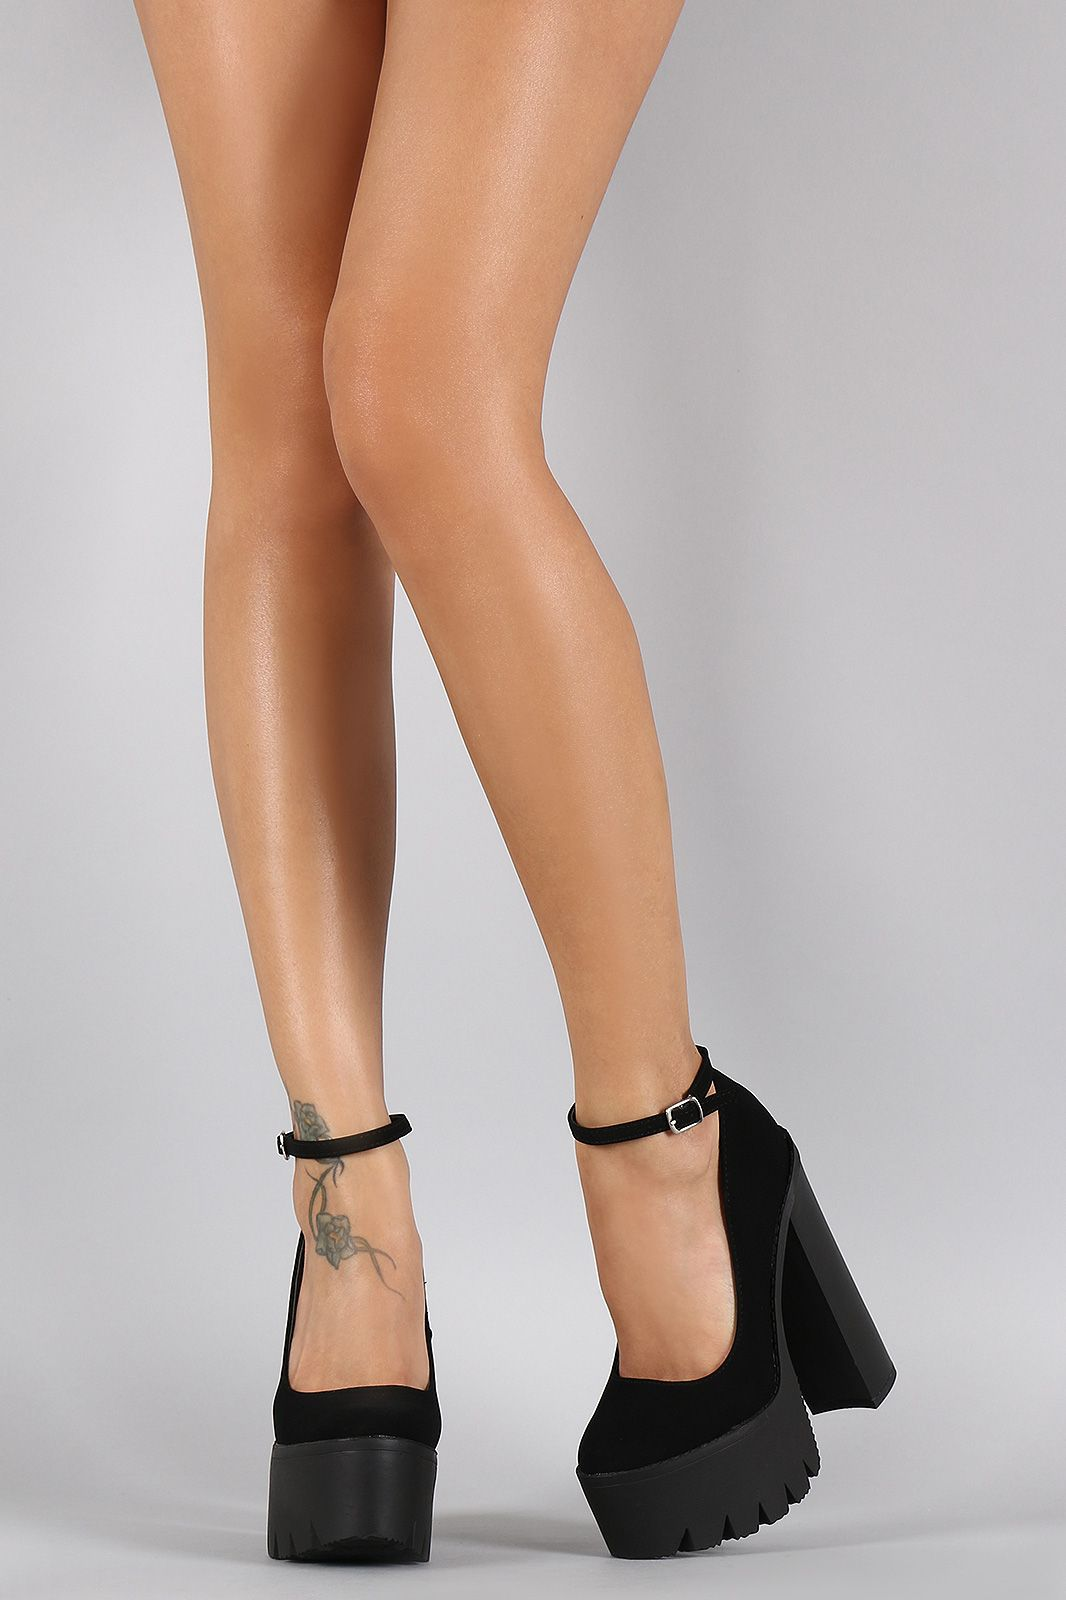 0c895c19be5 These are MY kinda heels! Tall